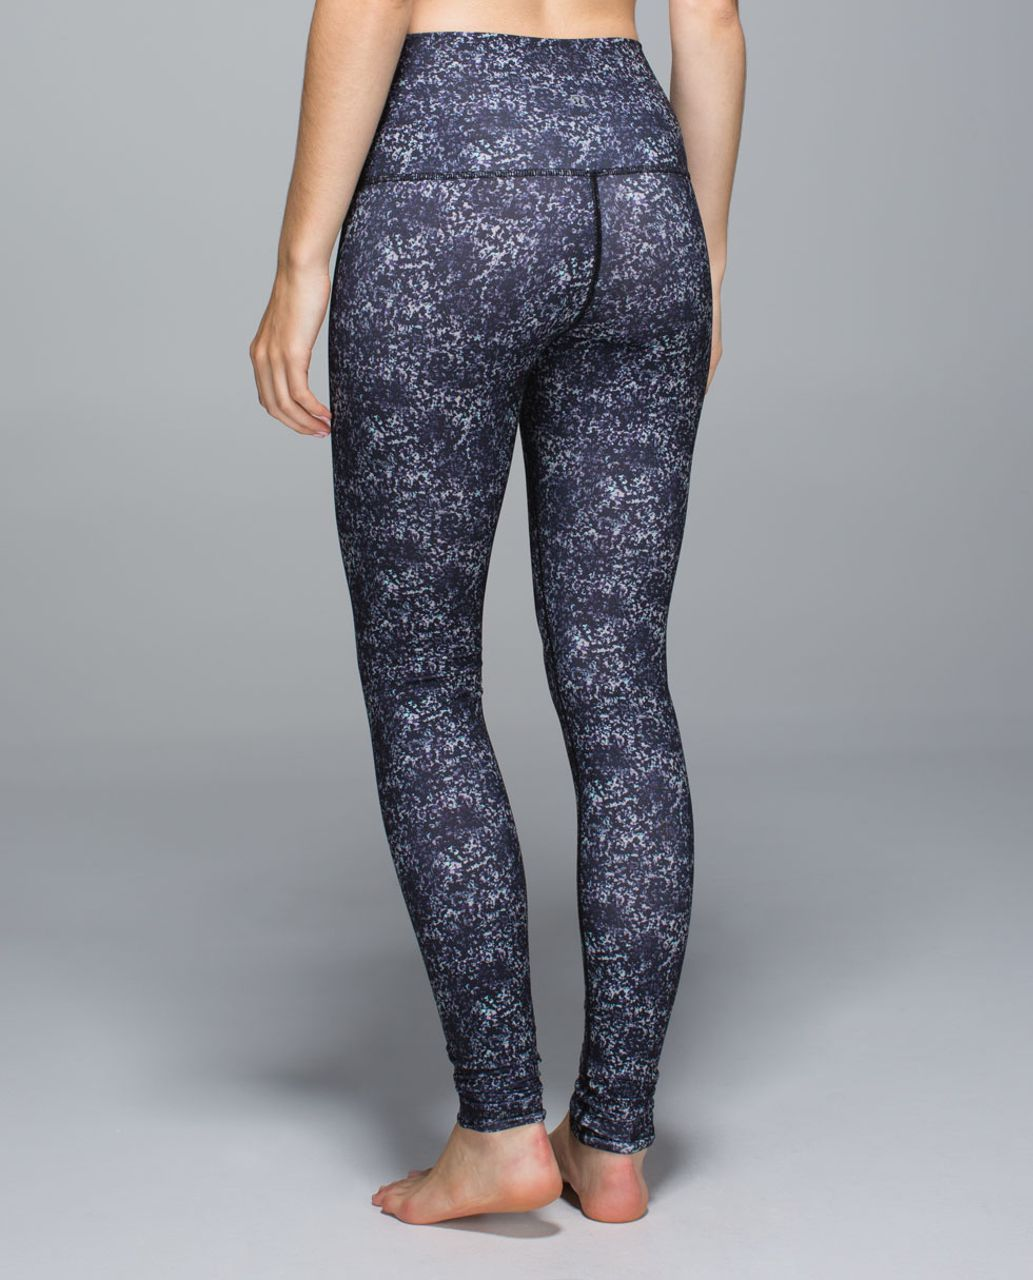 Lululemon Wunder Under Pant *Full-On Luon (Roll Down) - Rocky Road Sand Dune Toothpaste